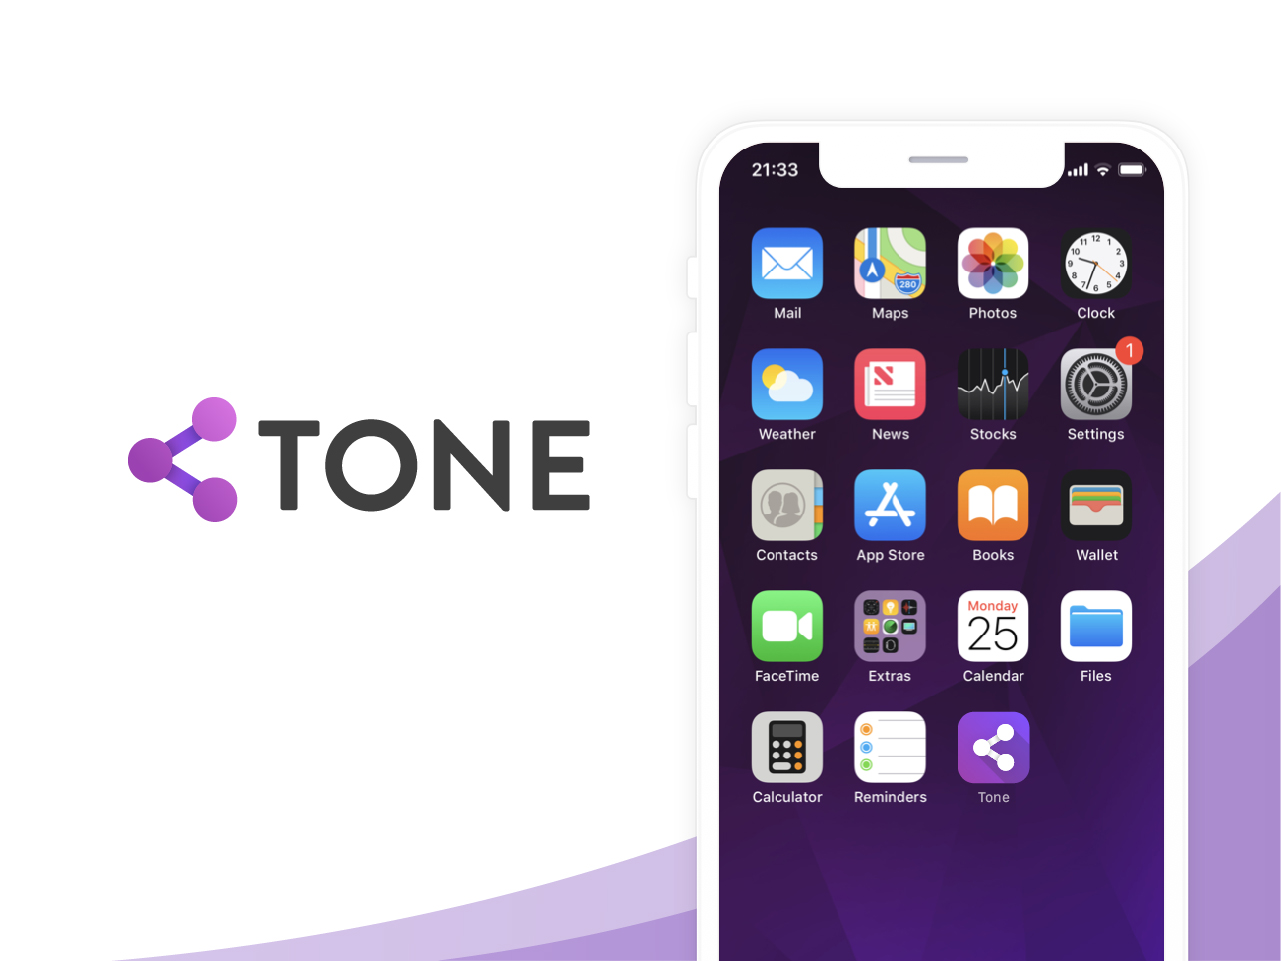 Image with a logo variant 2 for an app called Tone